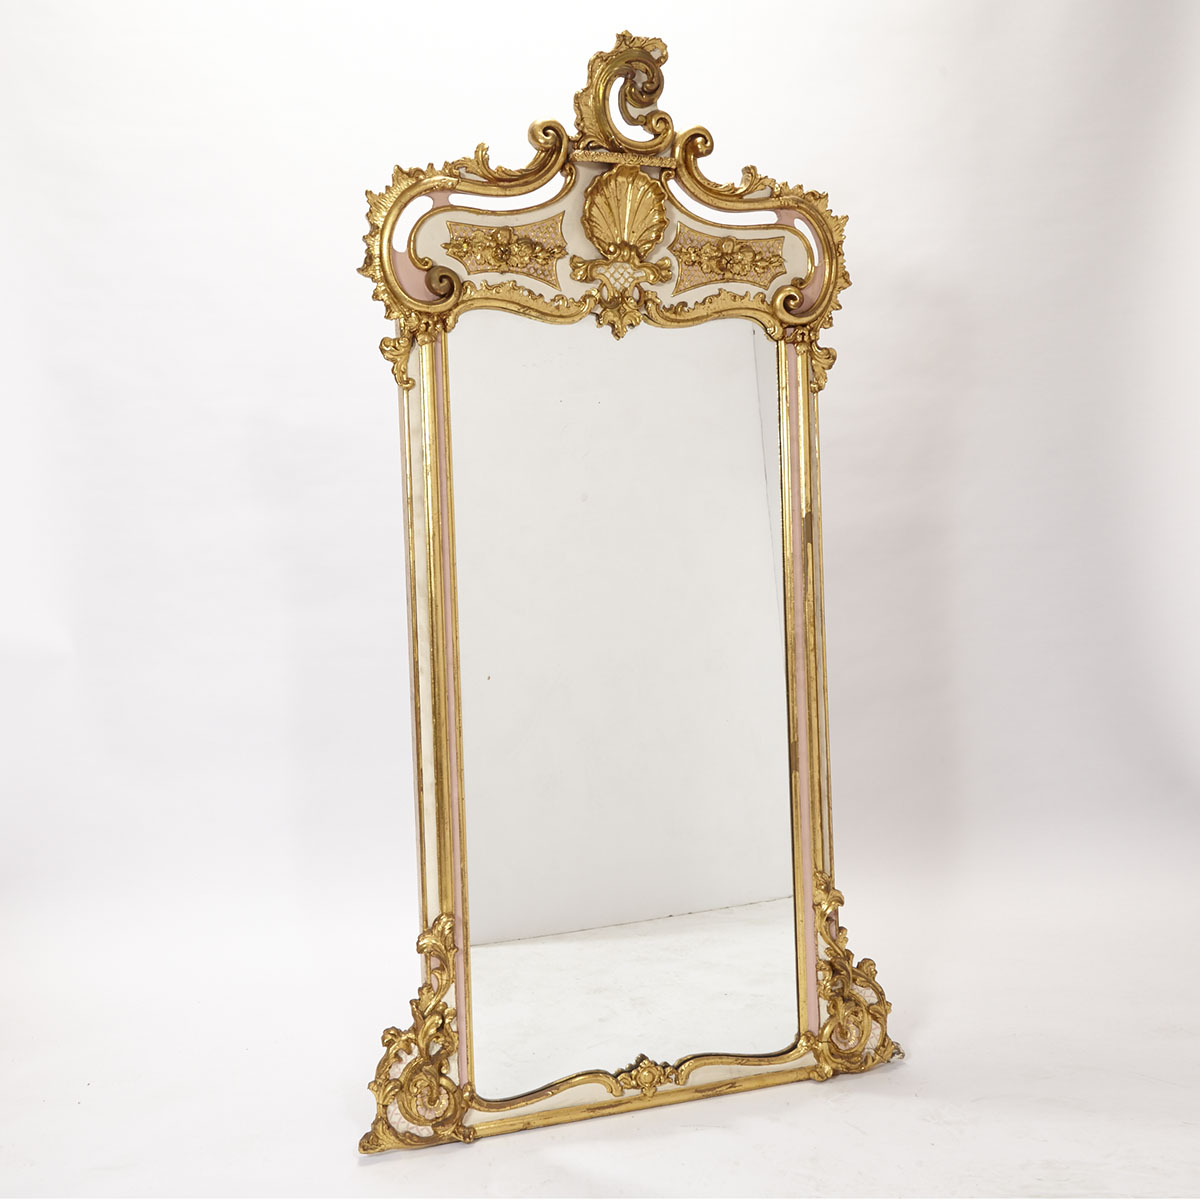 Italian Rococo Painted and Parcel Giltwood Pier Mirror, 19th/early 20th century